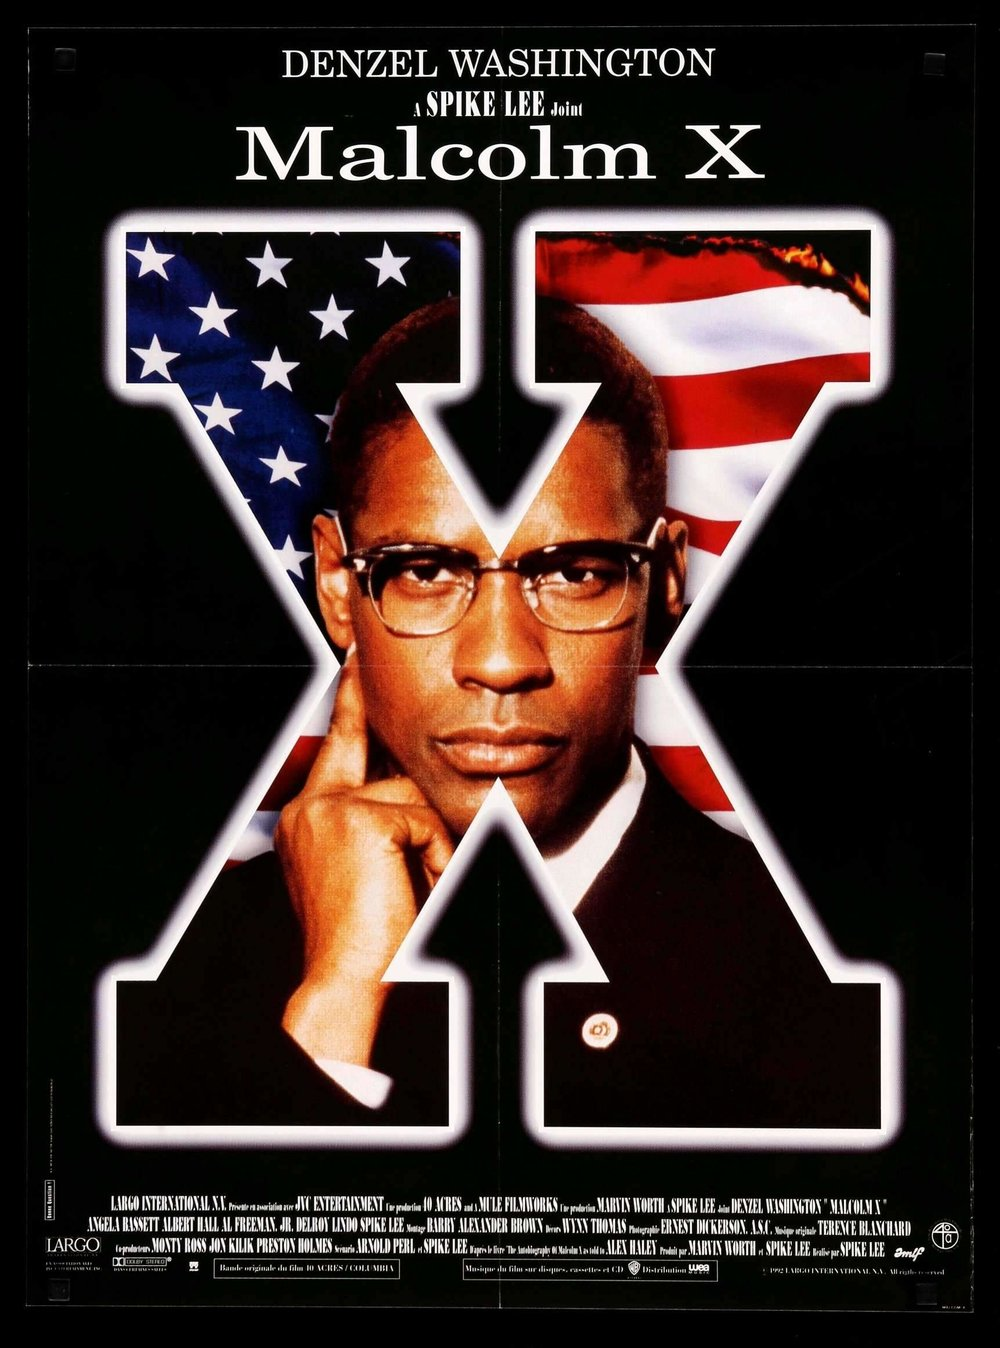 Malcolm_X_1992_French_original_film_art_spo_2000x.jpg